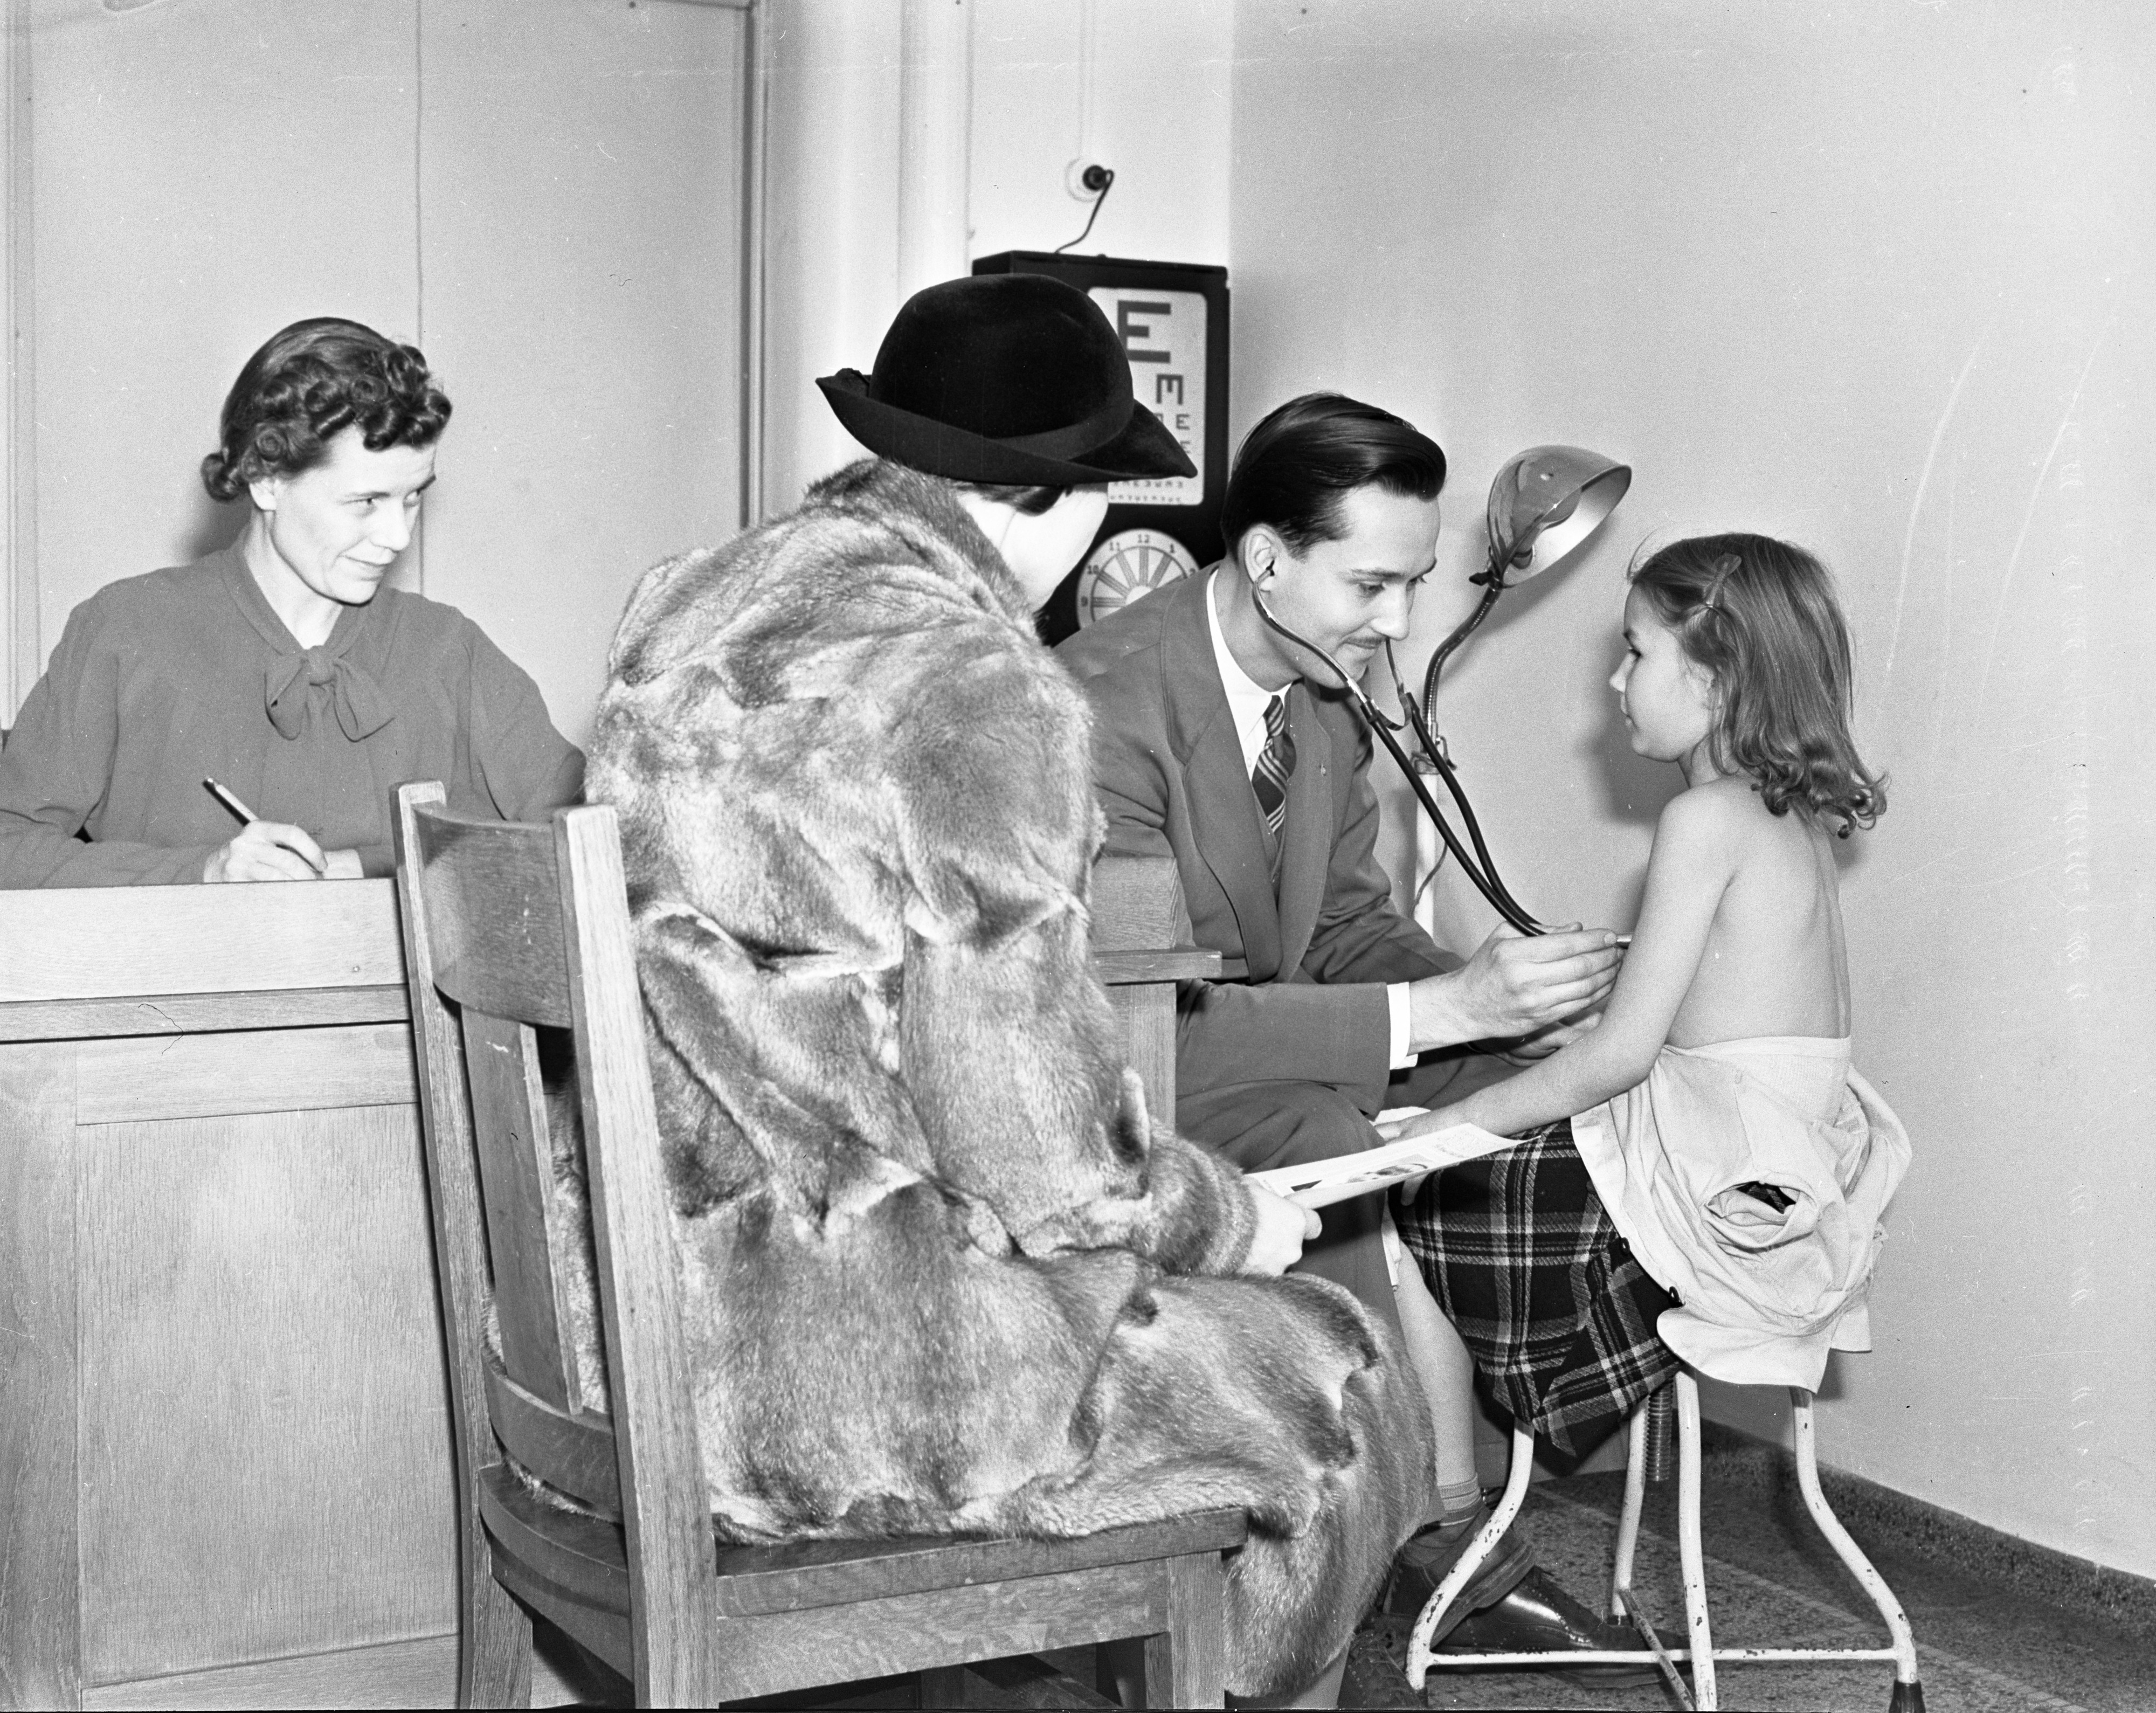 Perry School Health Center Student Health Exam, December 1938 image